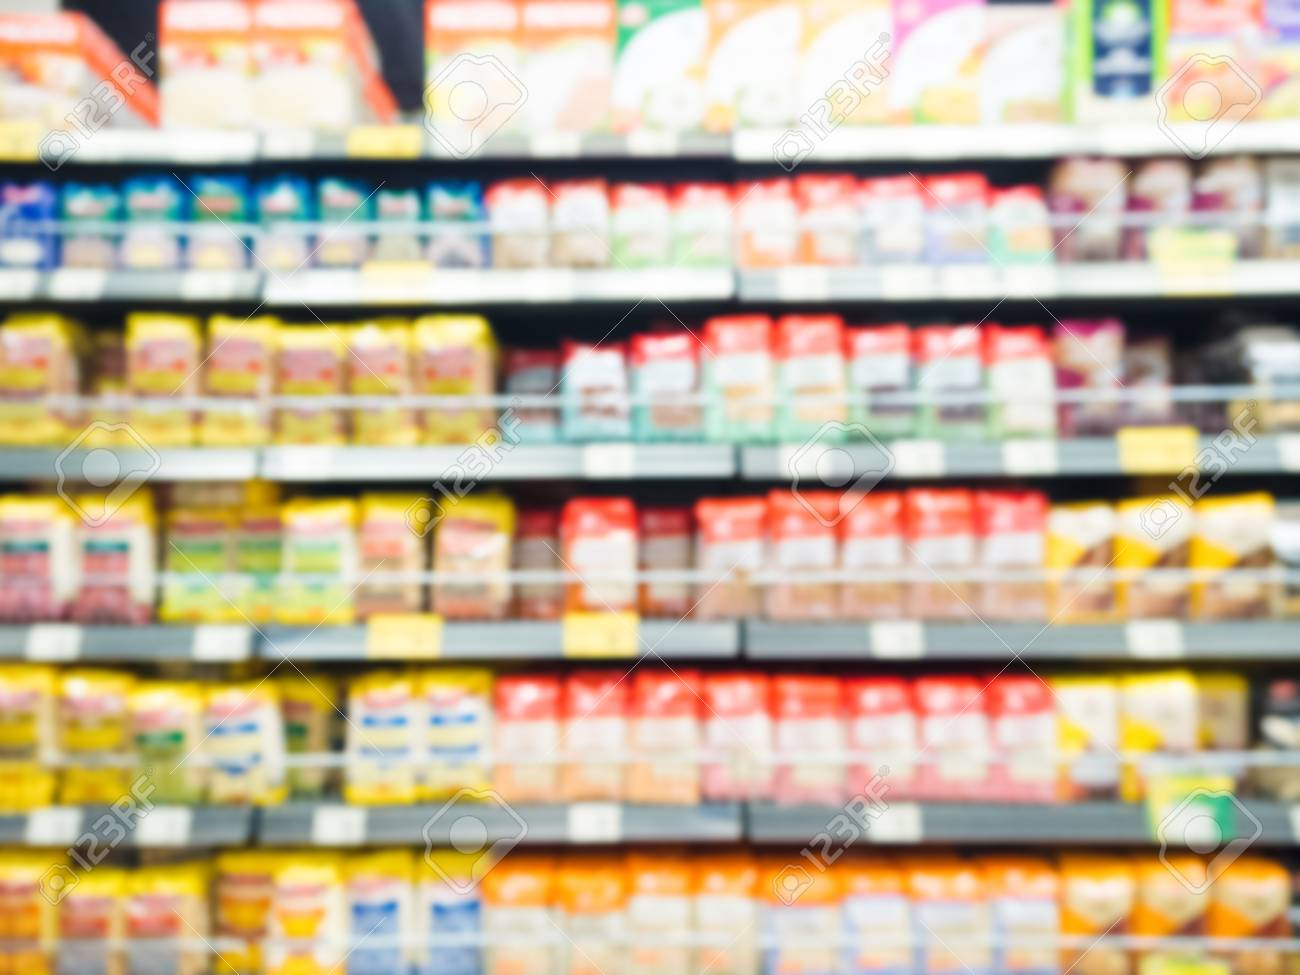 Blurred Shelves With Cereals In Supermarket